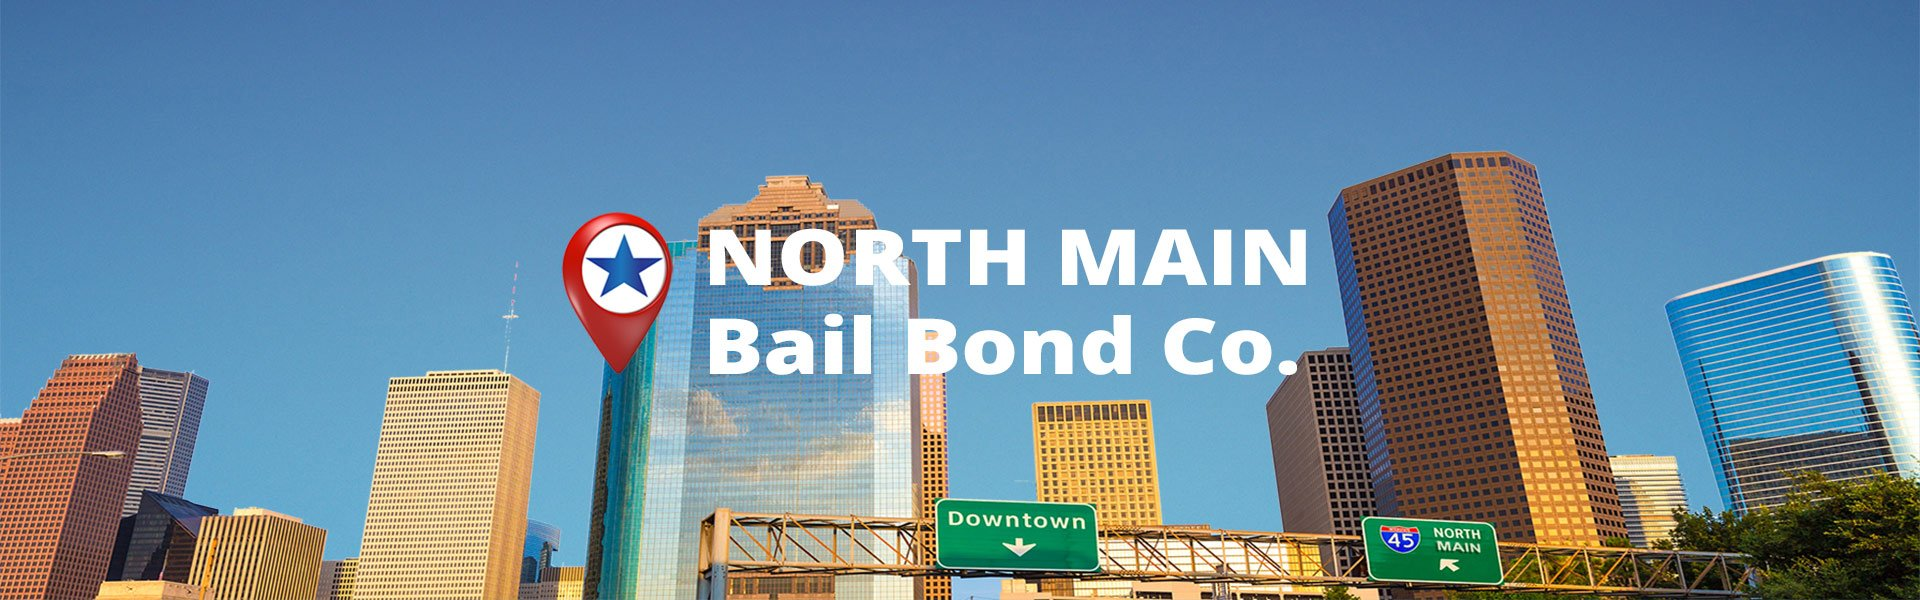 North Main Bail Bond Company in Houston